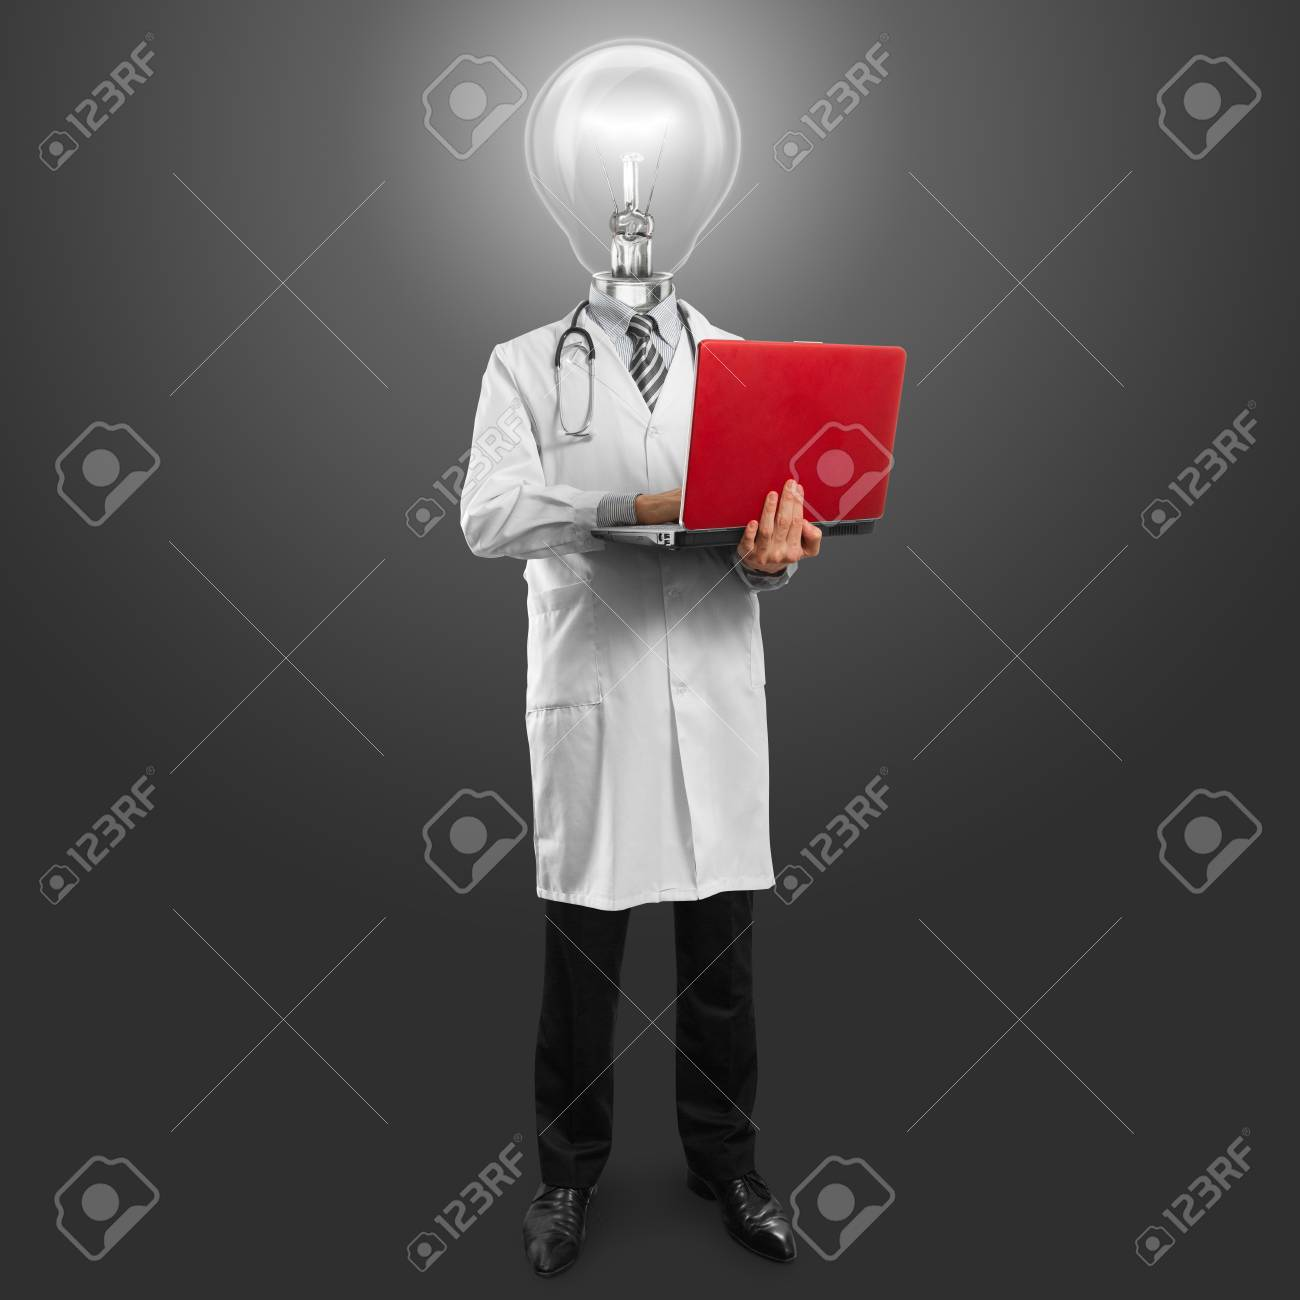 Idea concept, doctor man with lamp head, with laptop in his hands Stock Photo - 11835512